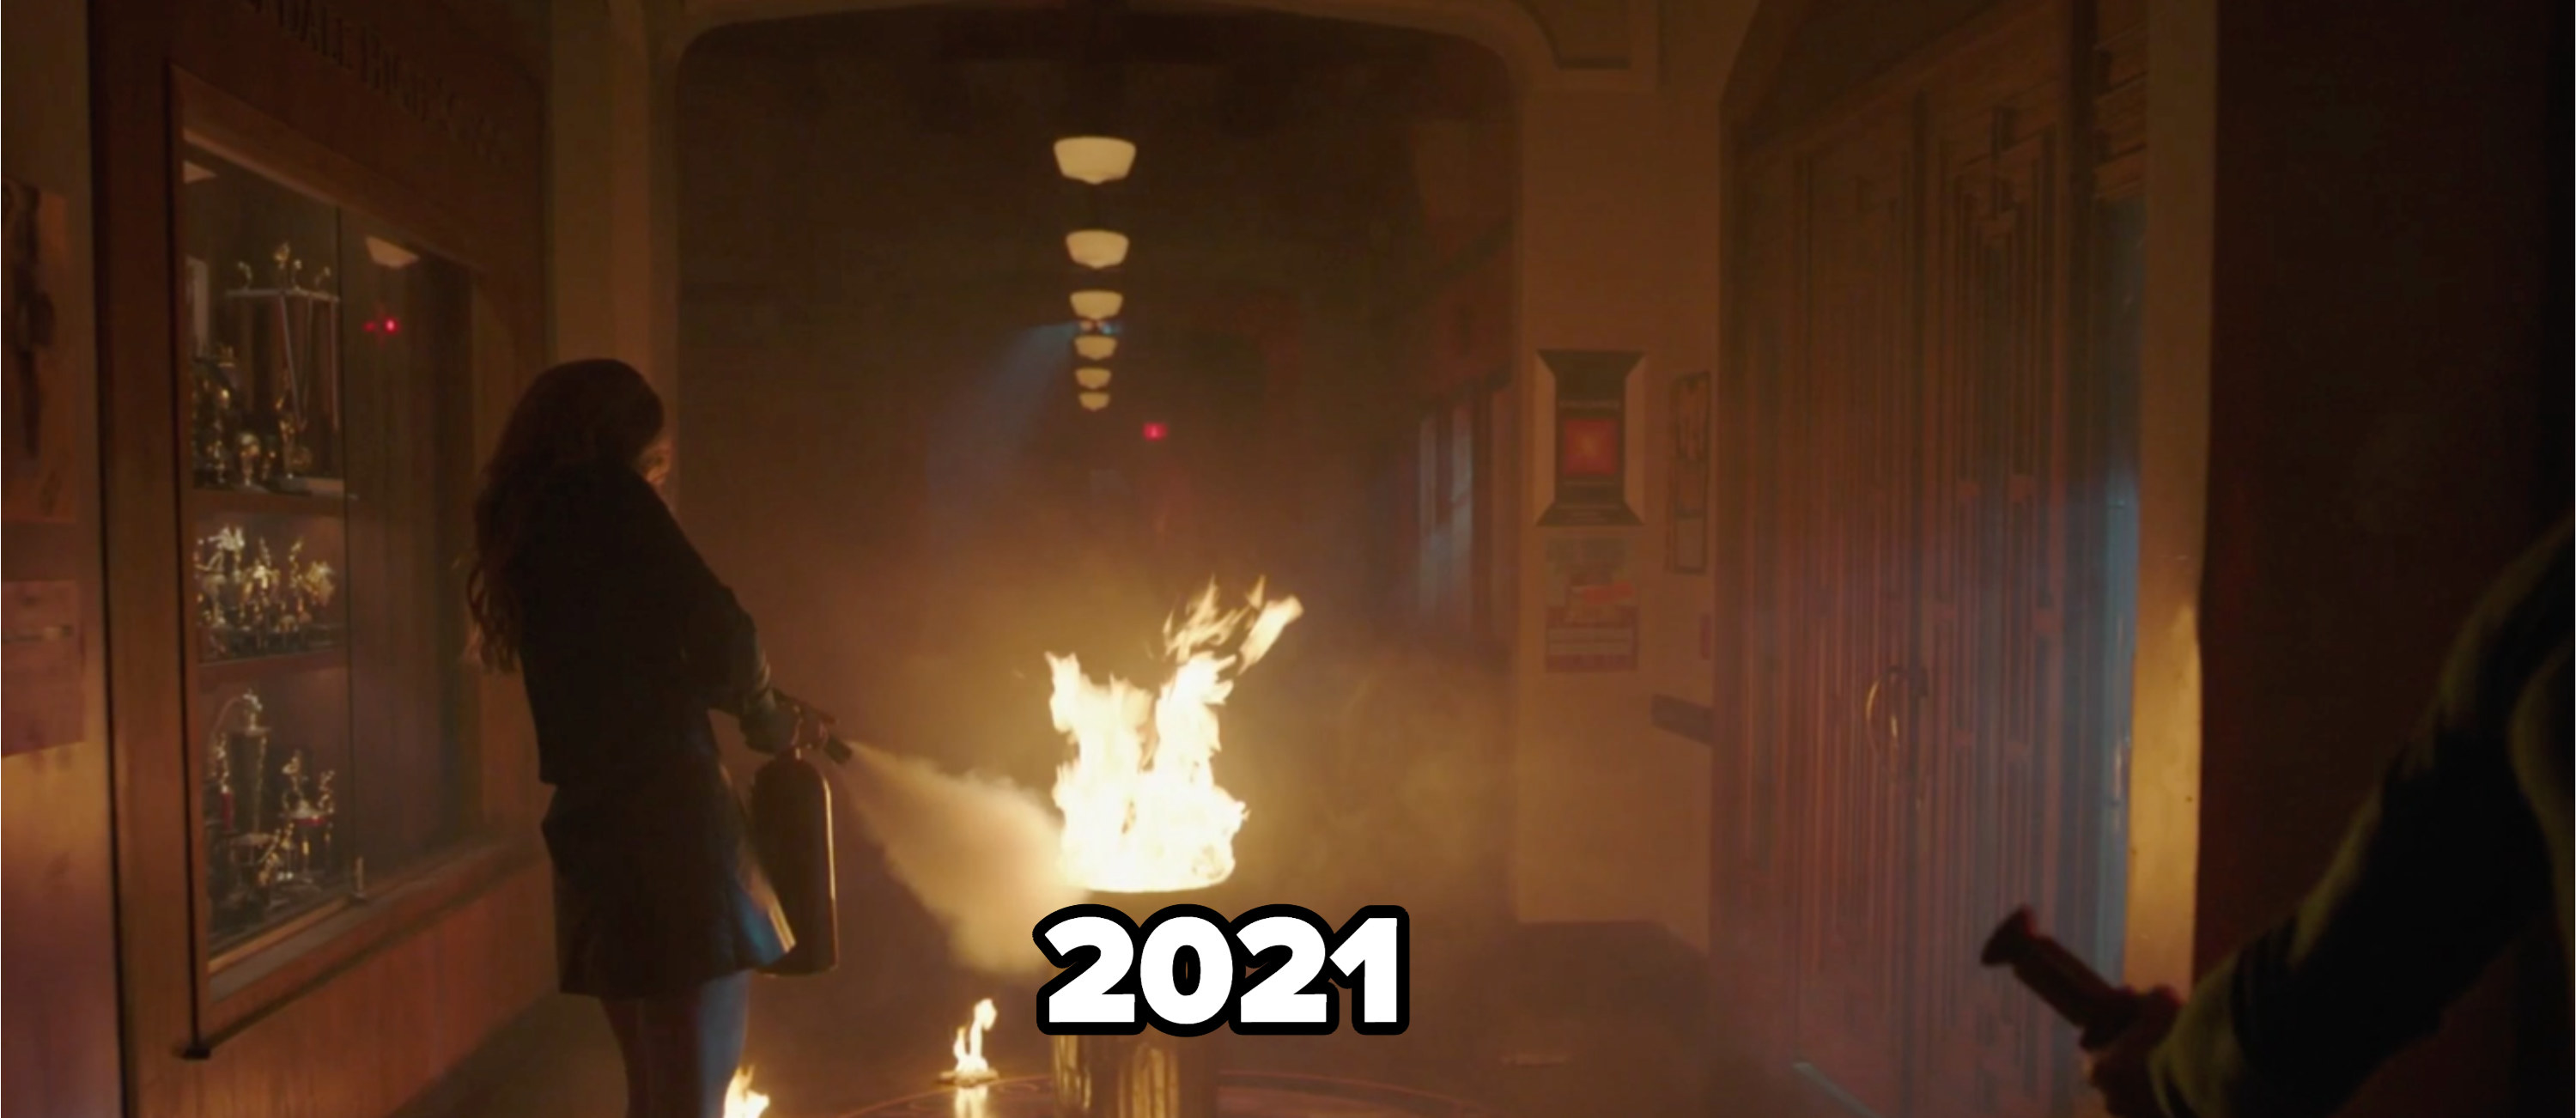 Literally a fire in the school trash captioned '2021' with someone attempting to put it out with a fire extinguisher